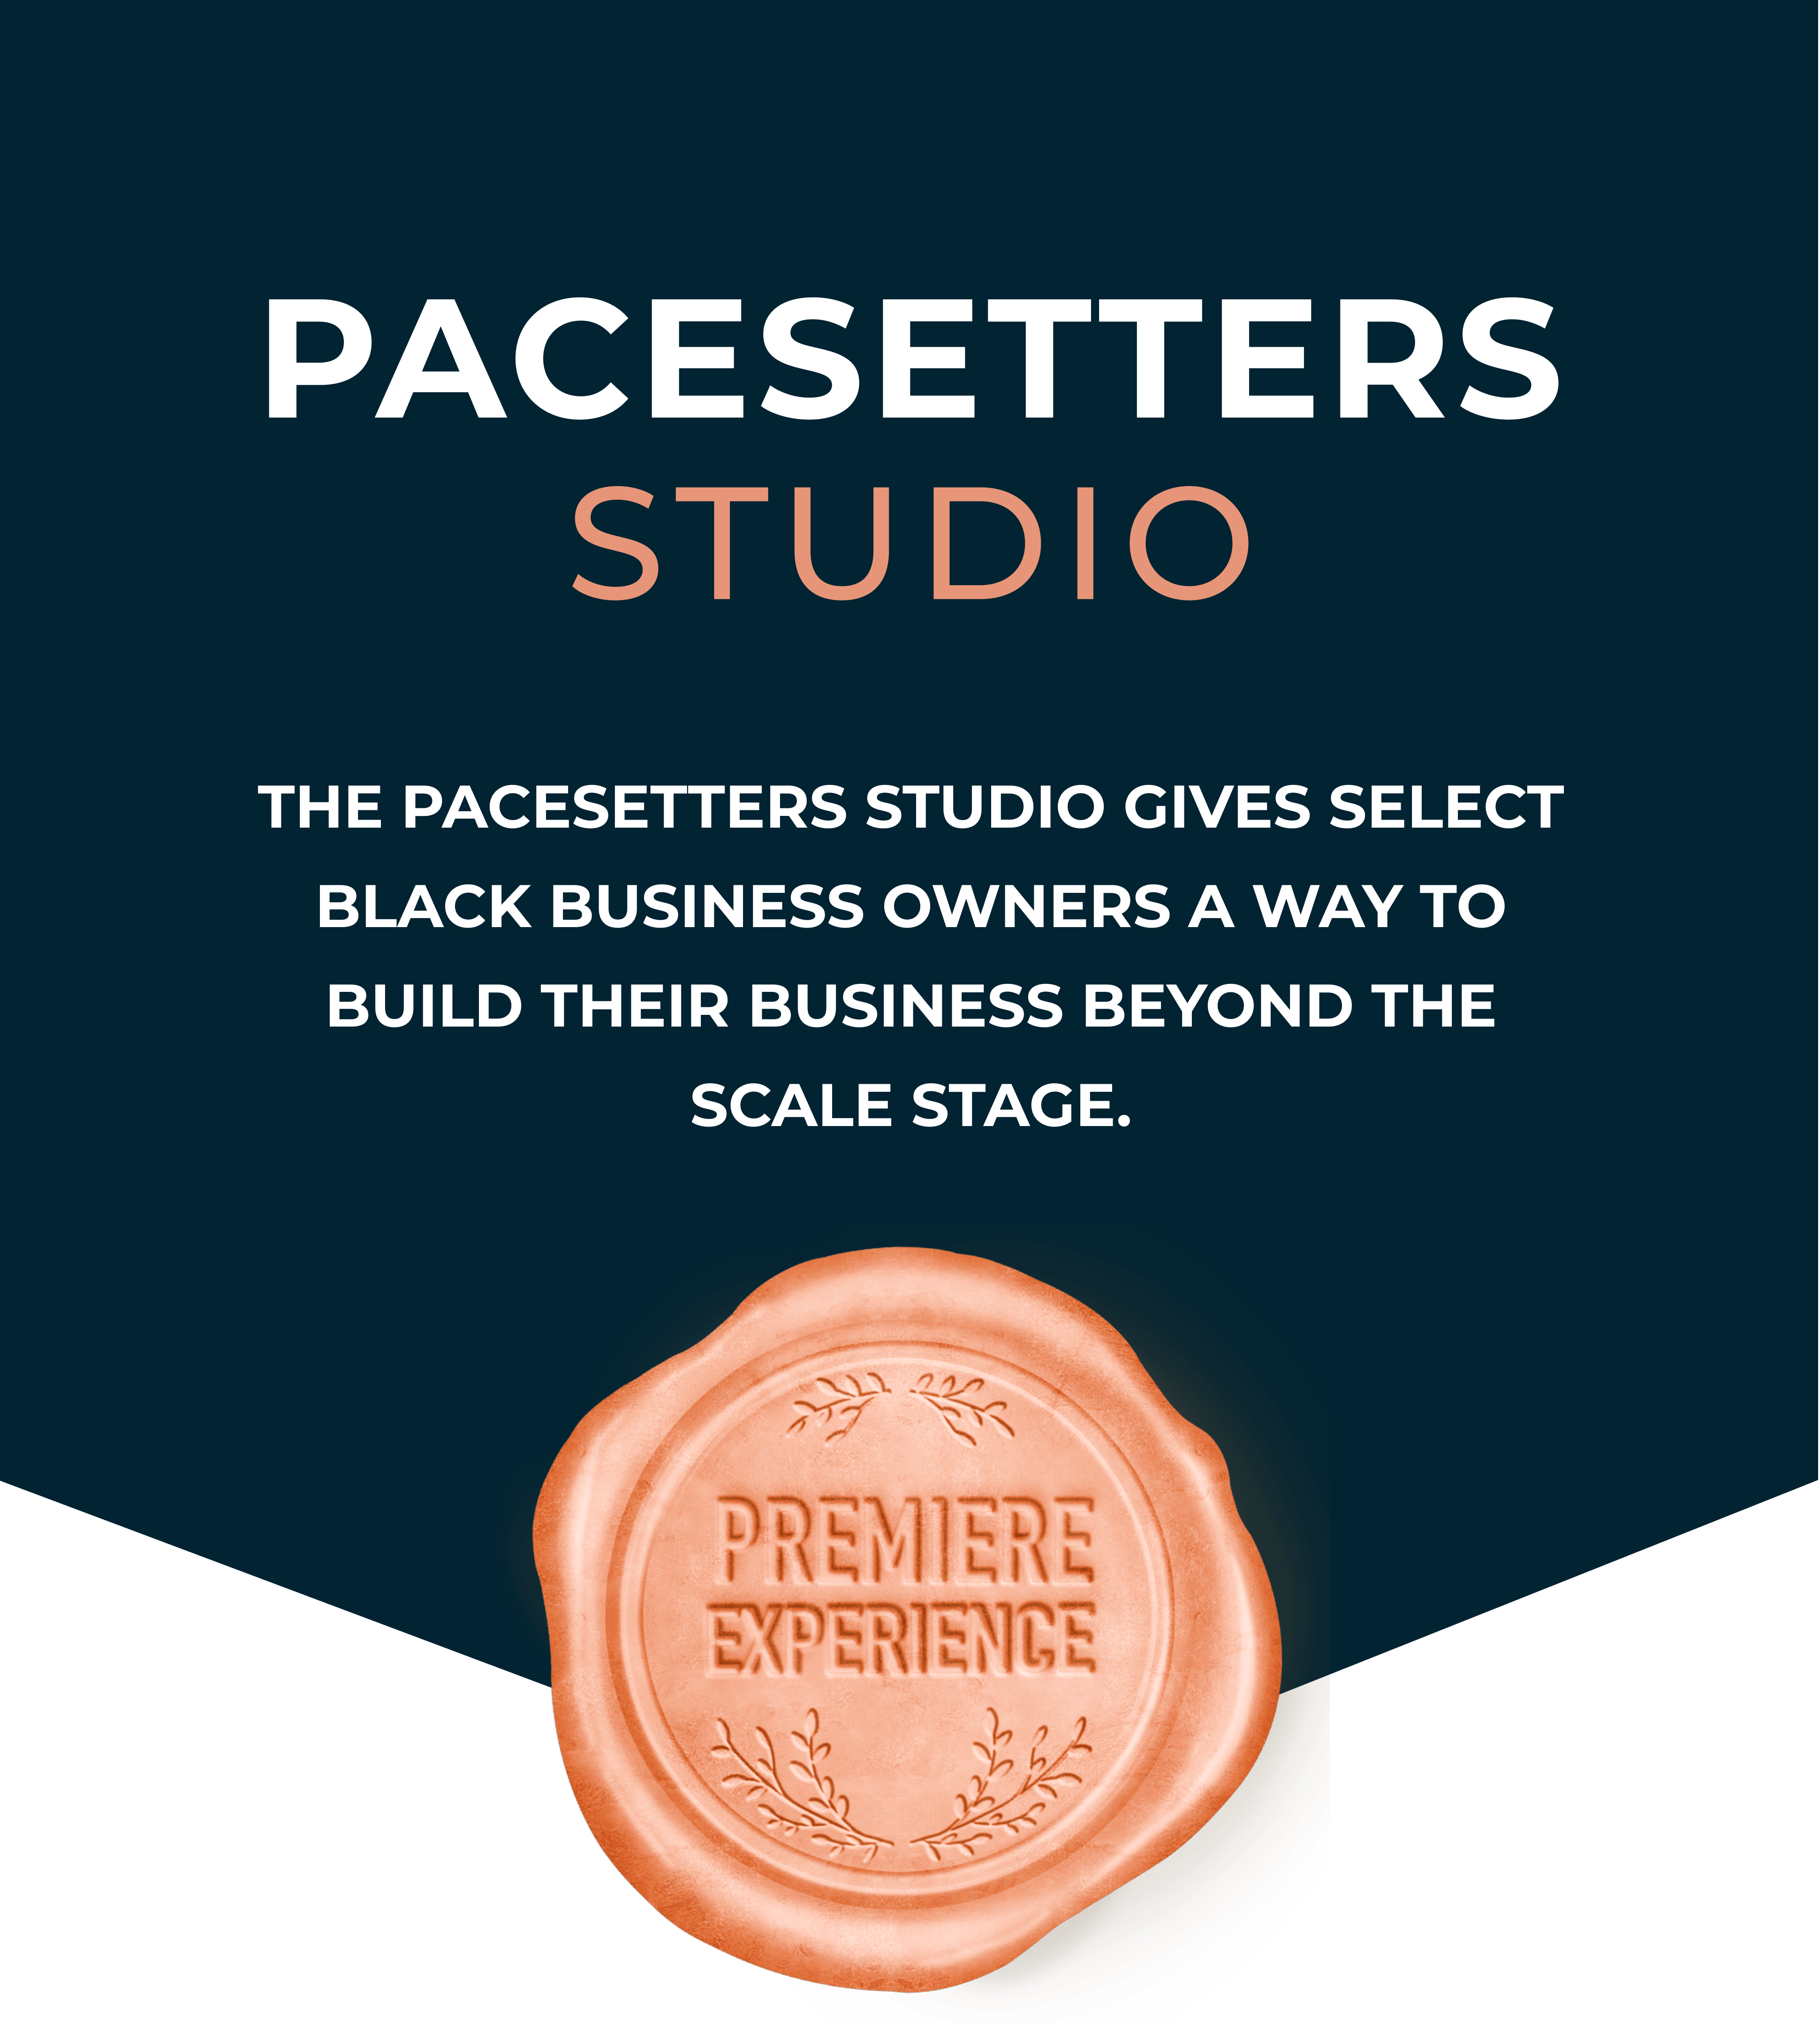 pacesetters-studio-mobile